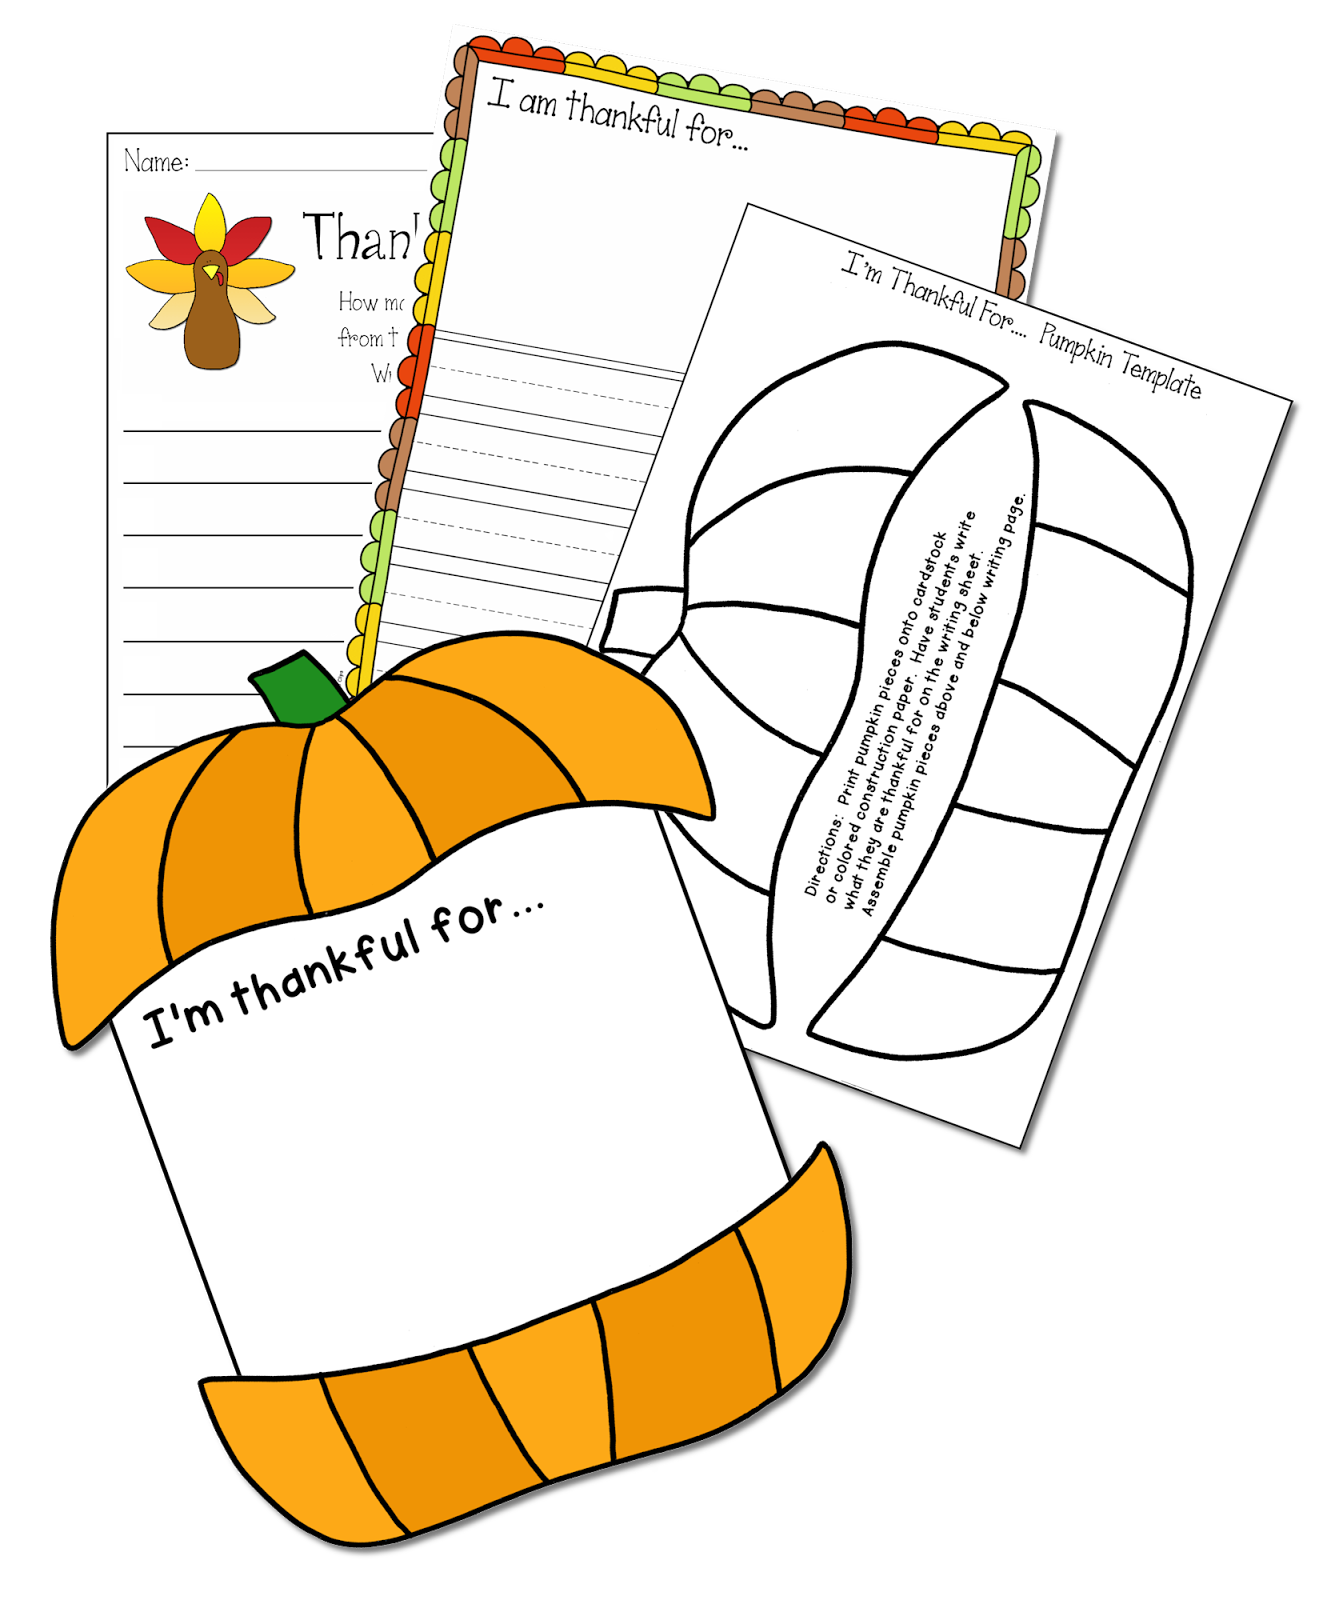 This Thanksgiving Freebie Includes A Pumpkin Template Designed To Be Topper And Footer For Writing Page Students Will Write What They Are Thankful